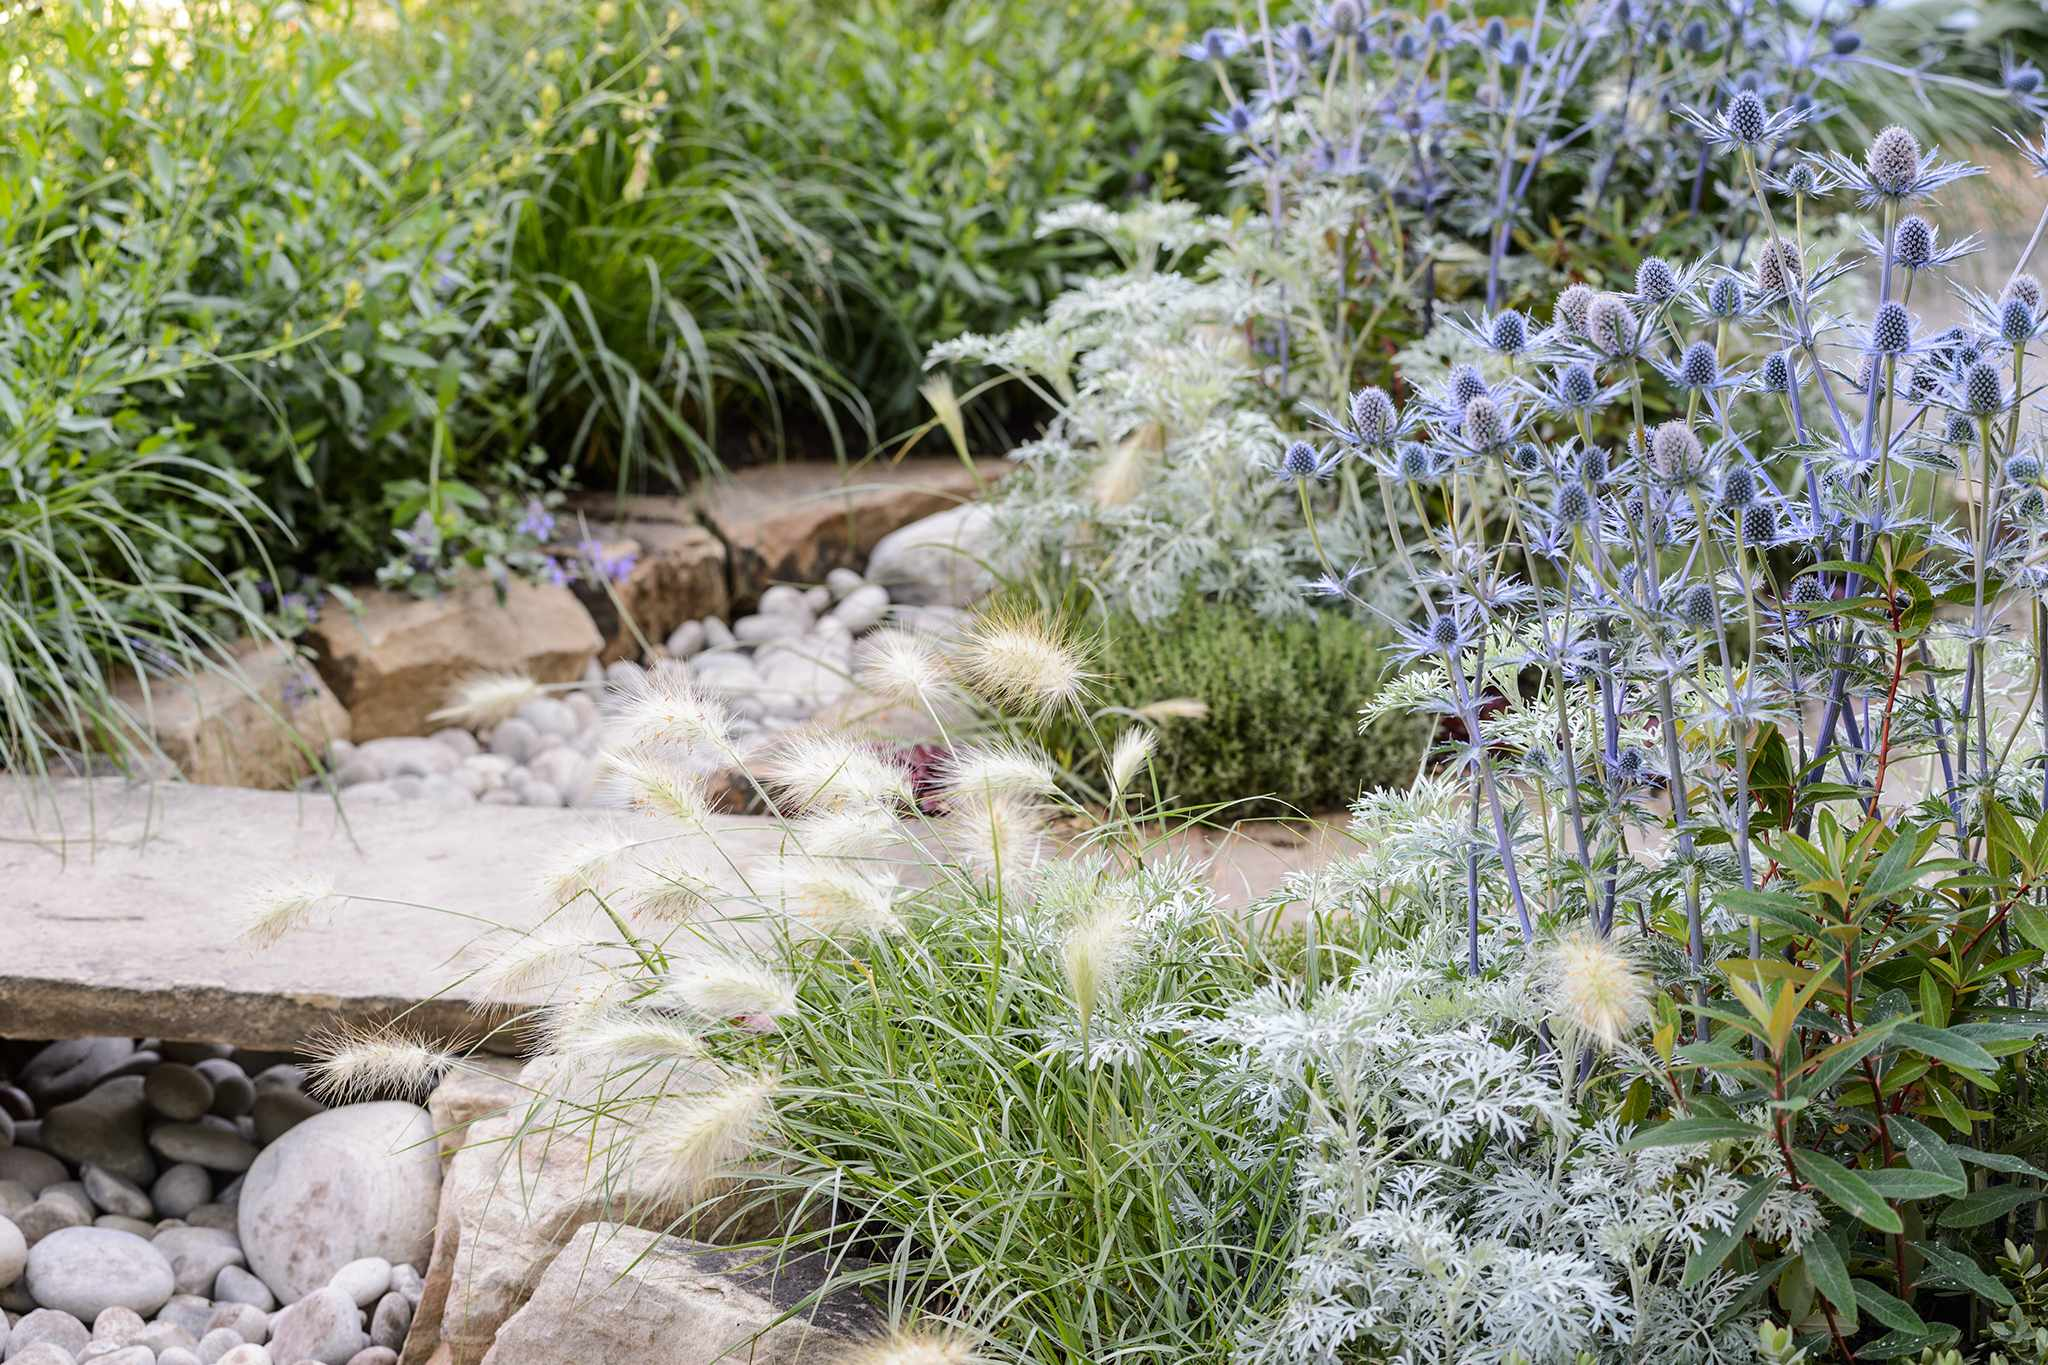 Eryngium Artemisia Pennisetum and Thyme in The Drought Garden designed by Steve Dimmock dry garden 040716 04072016 04/07/16 04/07/2016 4 4th July 2016 Summer RHS Hampton Court Flower Show Photographer Jason Ingram horizontal